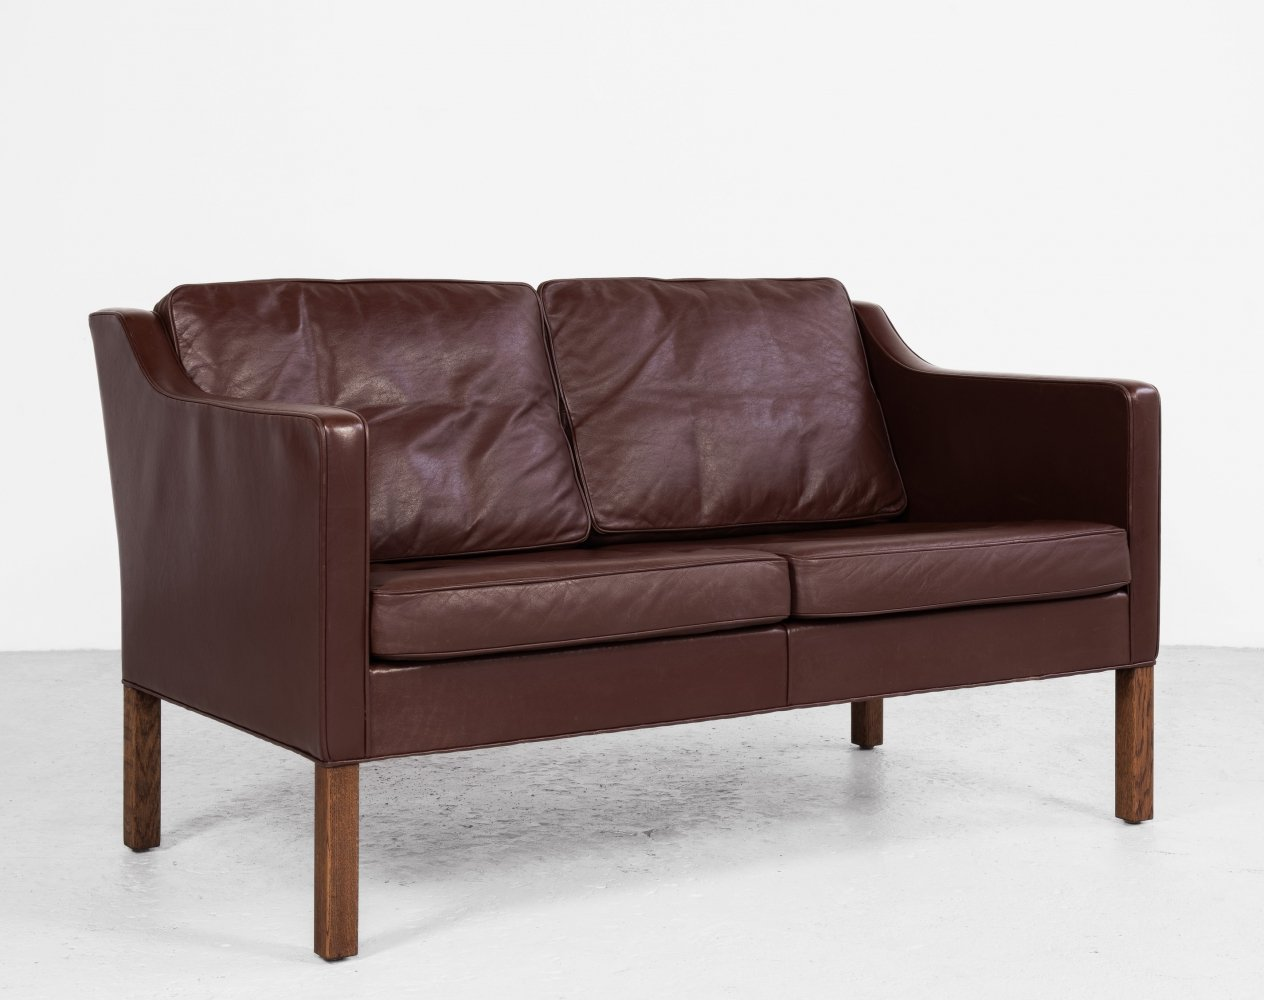 Midcentury Danish 2-seater sofa in leather by Børge Mogensen for Fredericia